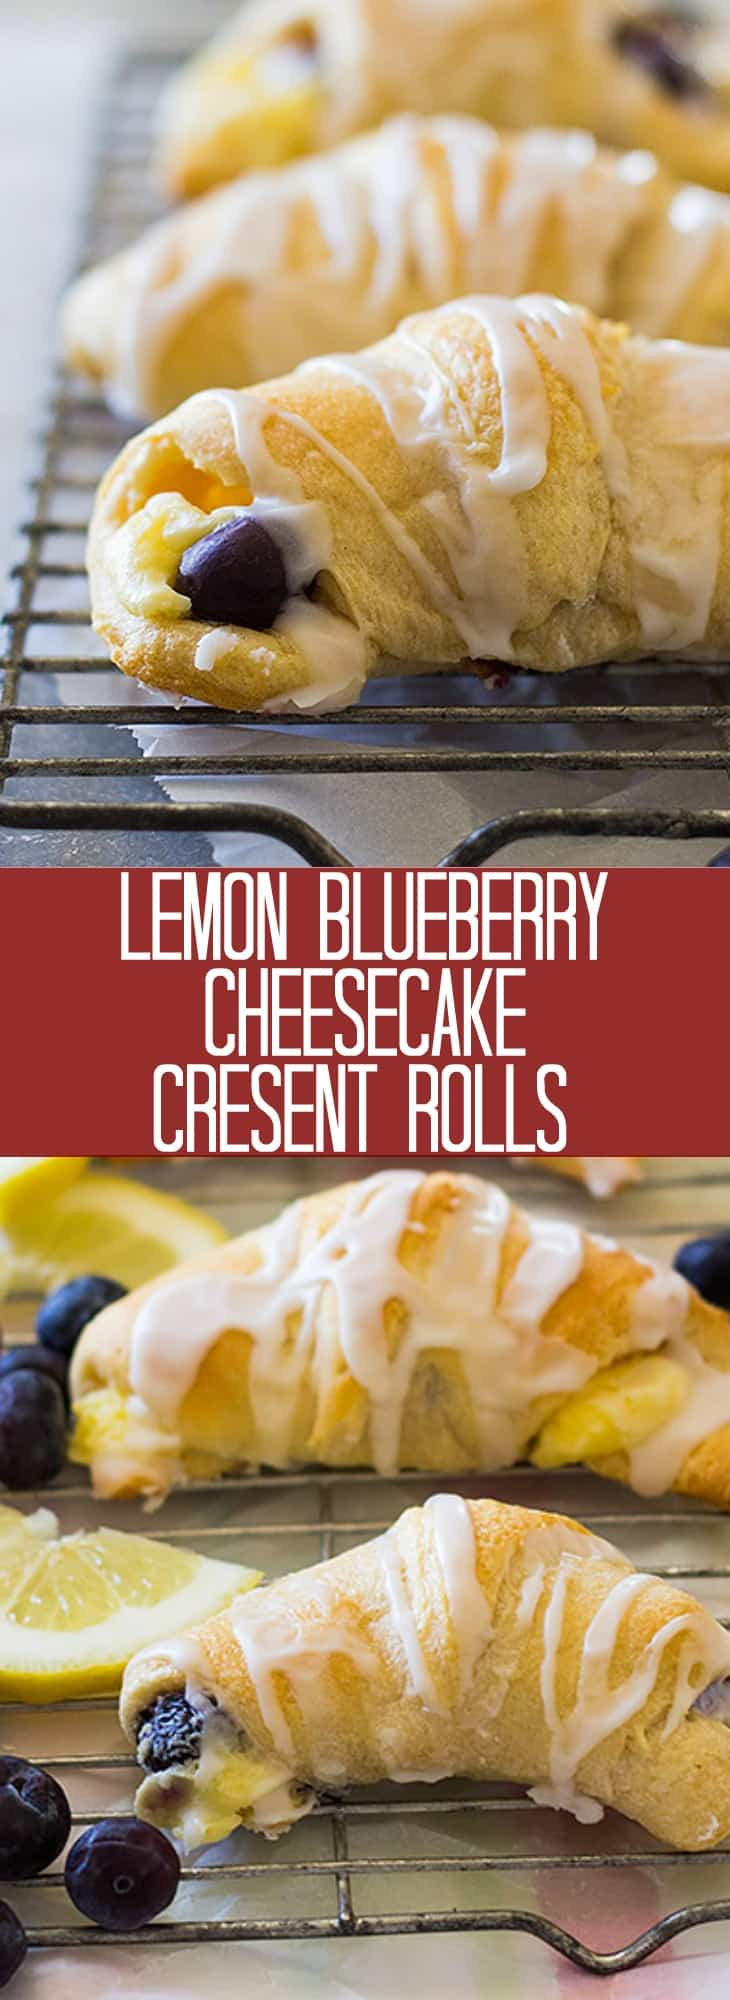 These Lemon Blueberry Cheesecake Crescent Rolls are an easy recipe to make. They are filled with a lemony cheesecake and fresh blueberries all wrapped in a flaky crescent roll!